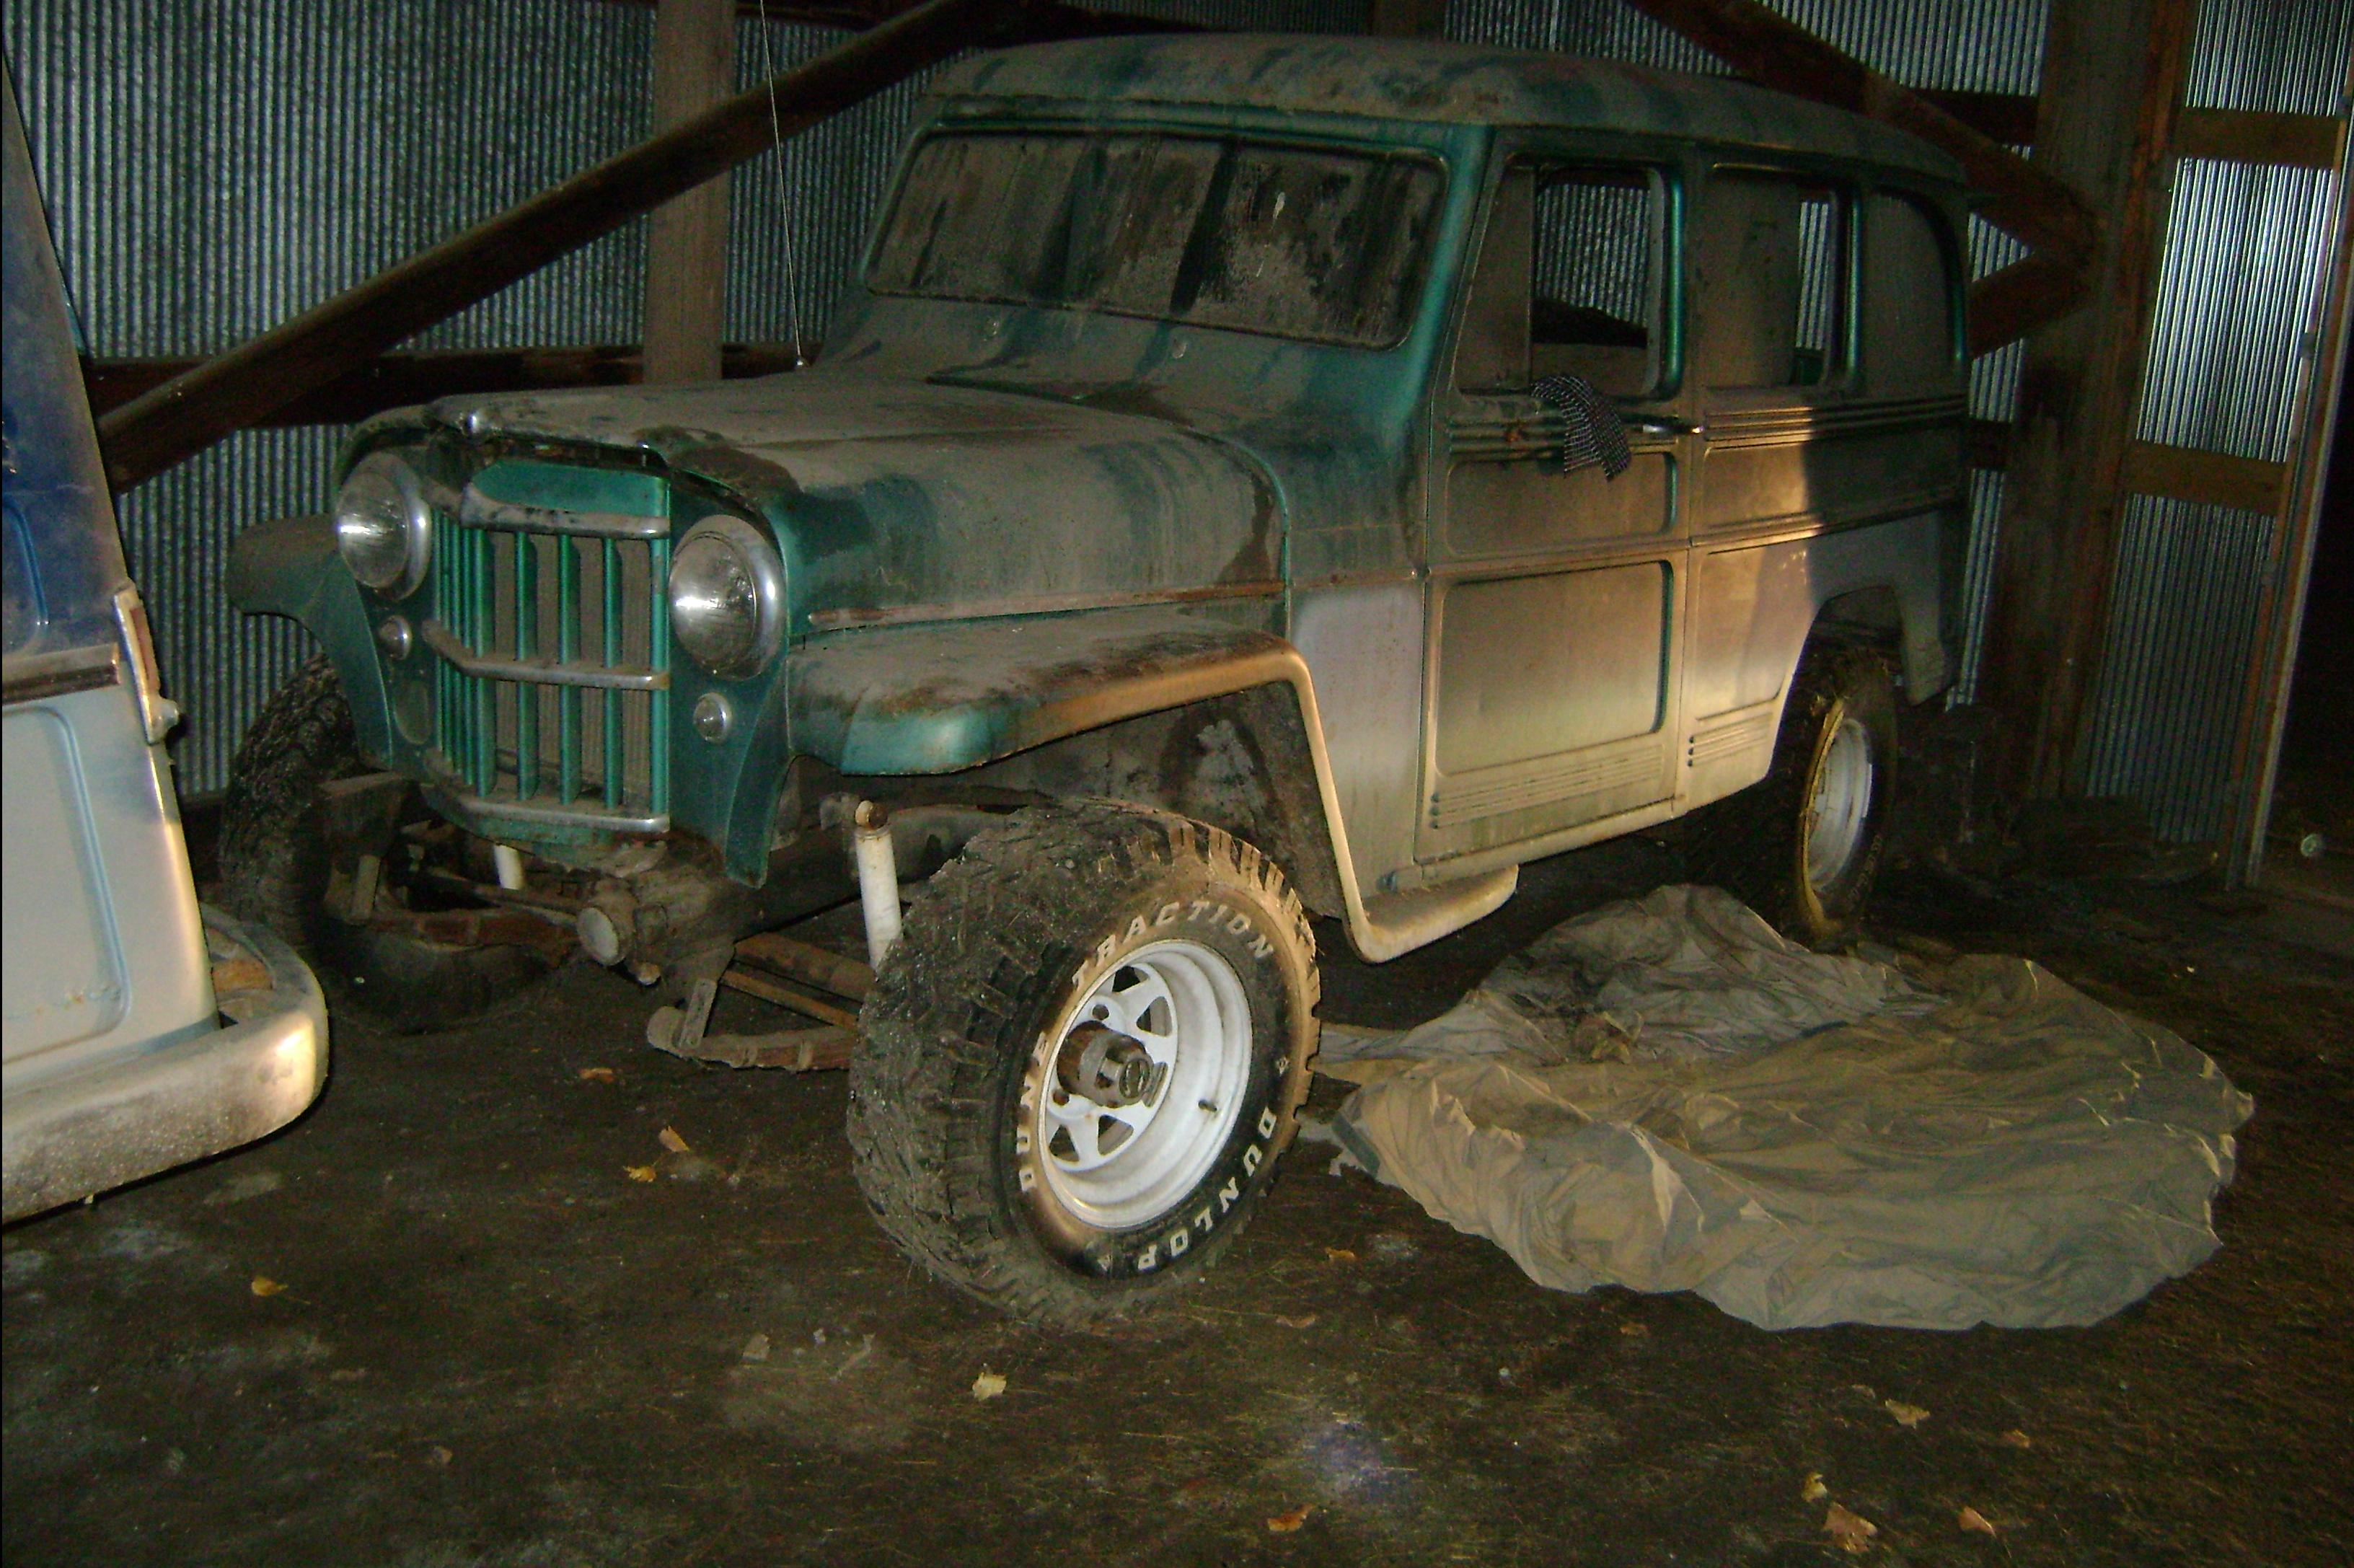 bork81's 1958 Willys Wagon